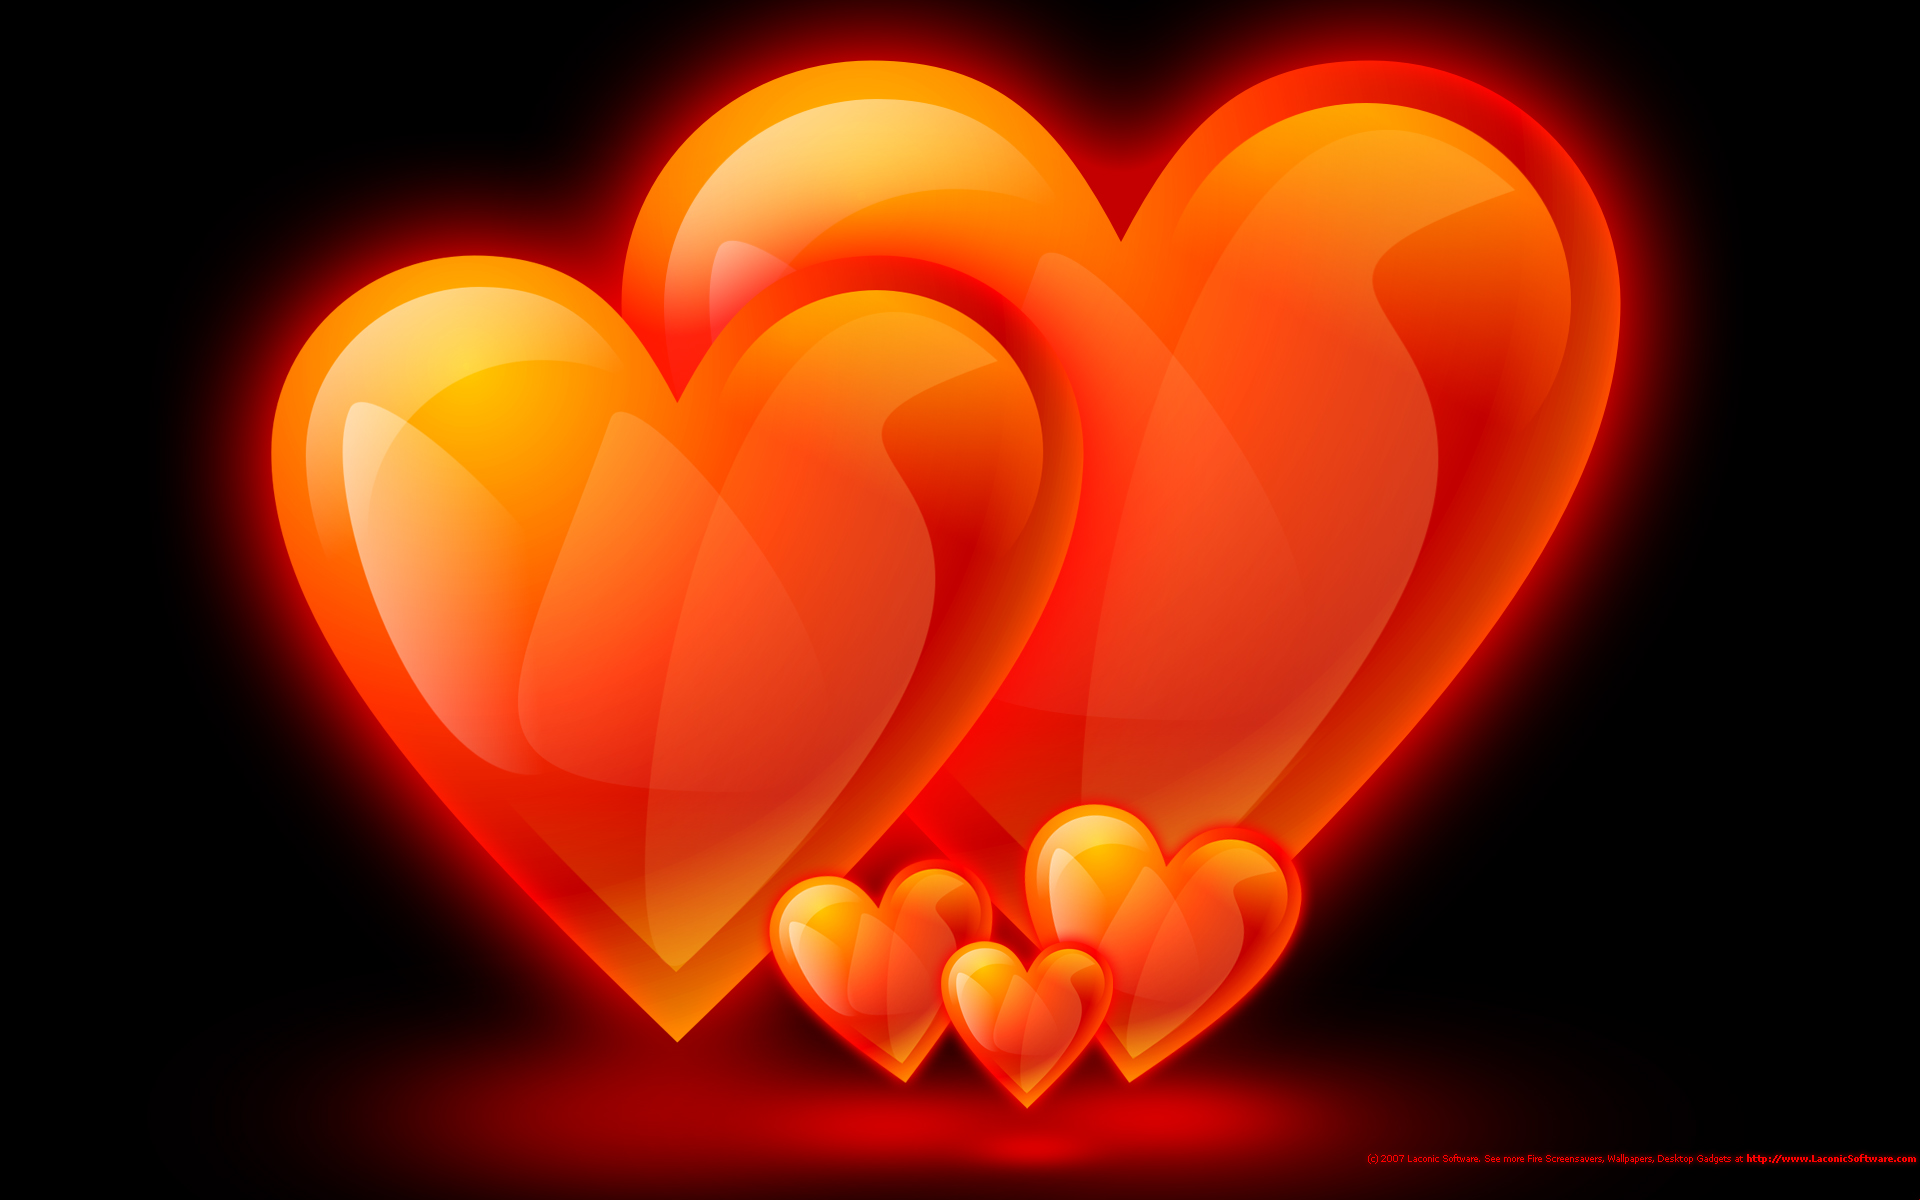 flame wallpaper hearts family wallpapers screensavers background 1920x1200